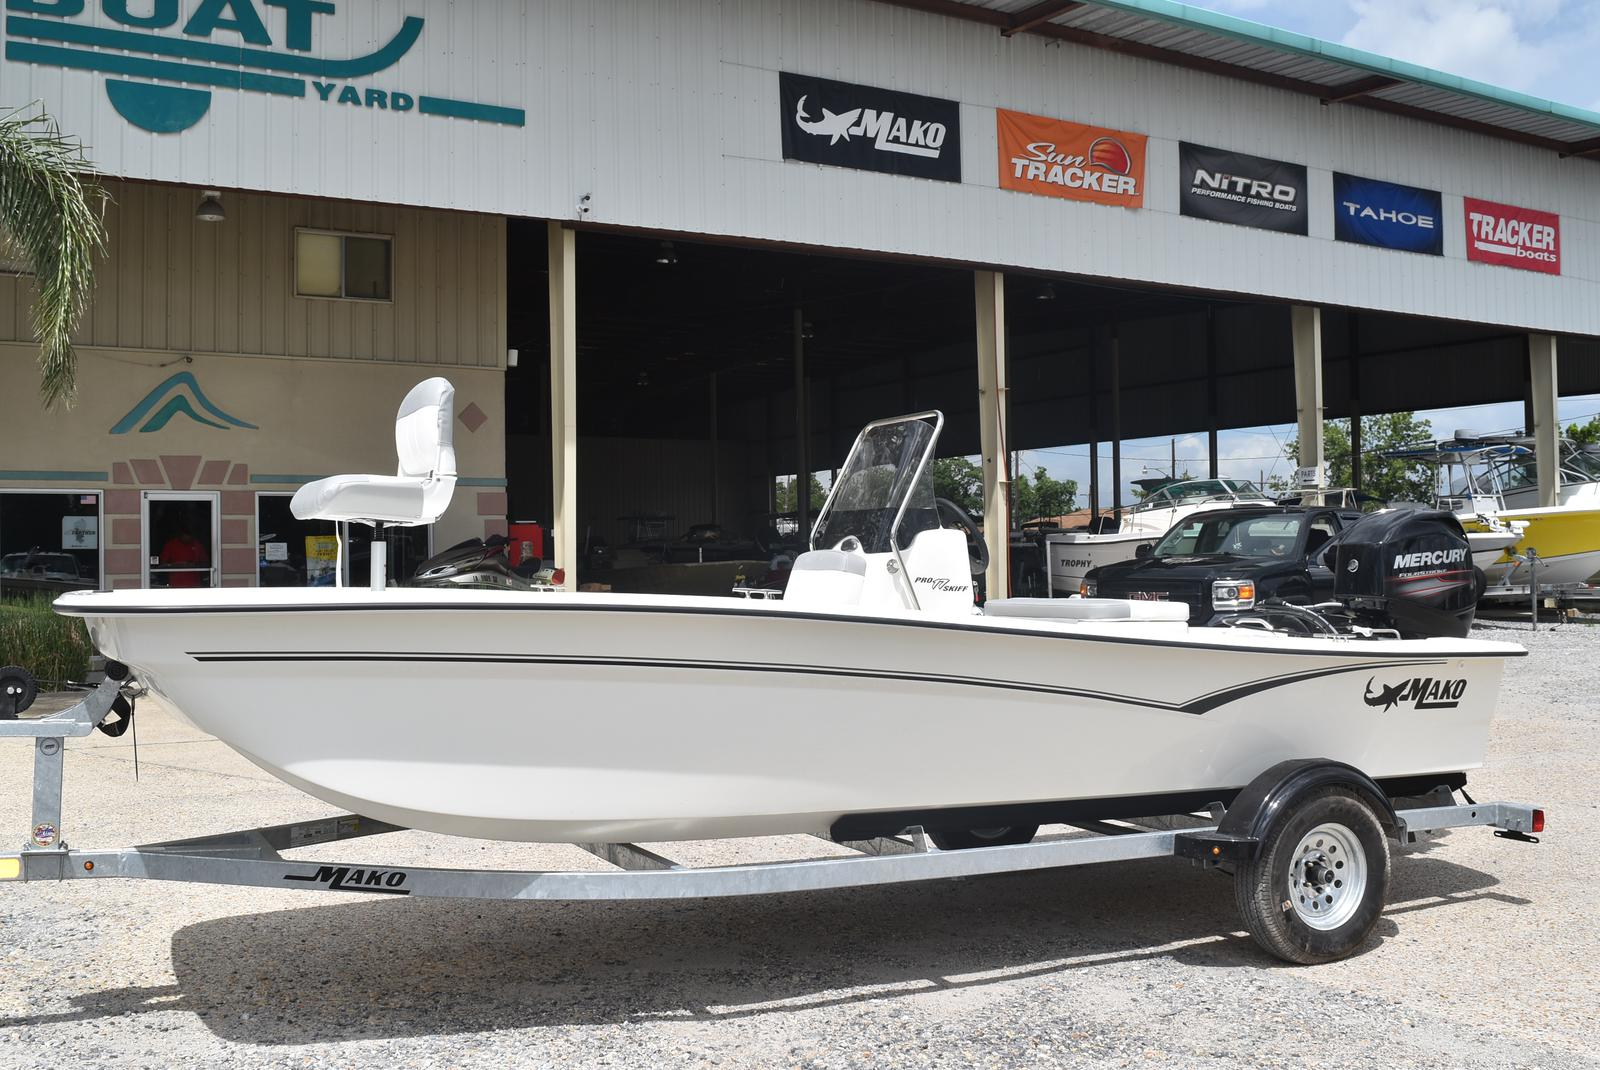 2020 Mako boat for sale, model of the boat is Pro Skiff 17, 75 ELPT & Image # 151 of 702